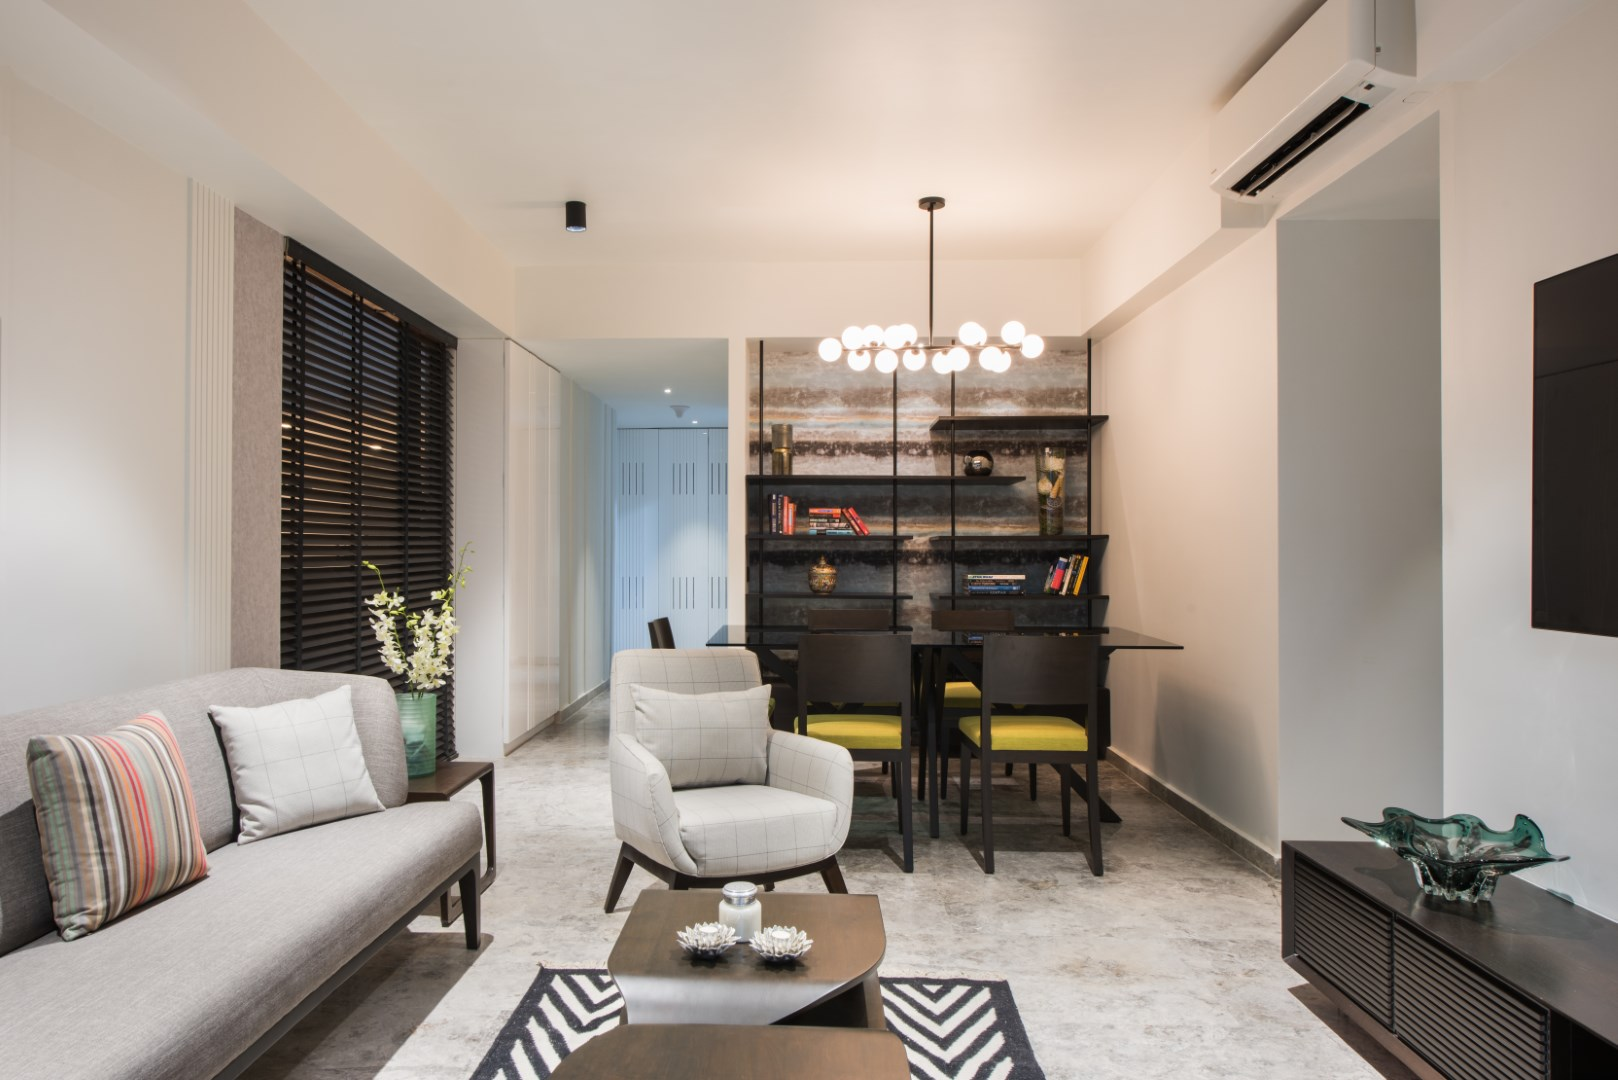 Each Room In The House Has Been Suited With Its Individual Identity, With  Clean Lines And Sublime Functionality Being The Commonality.